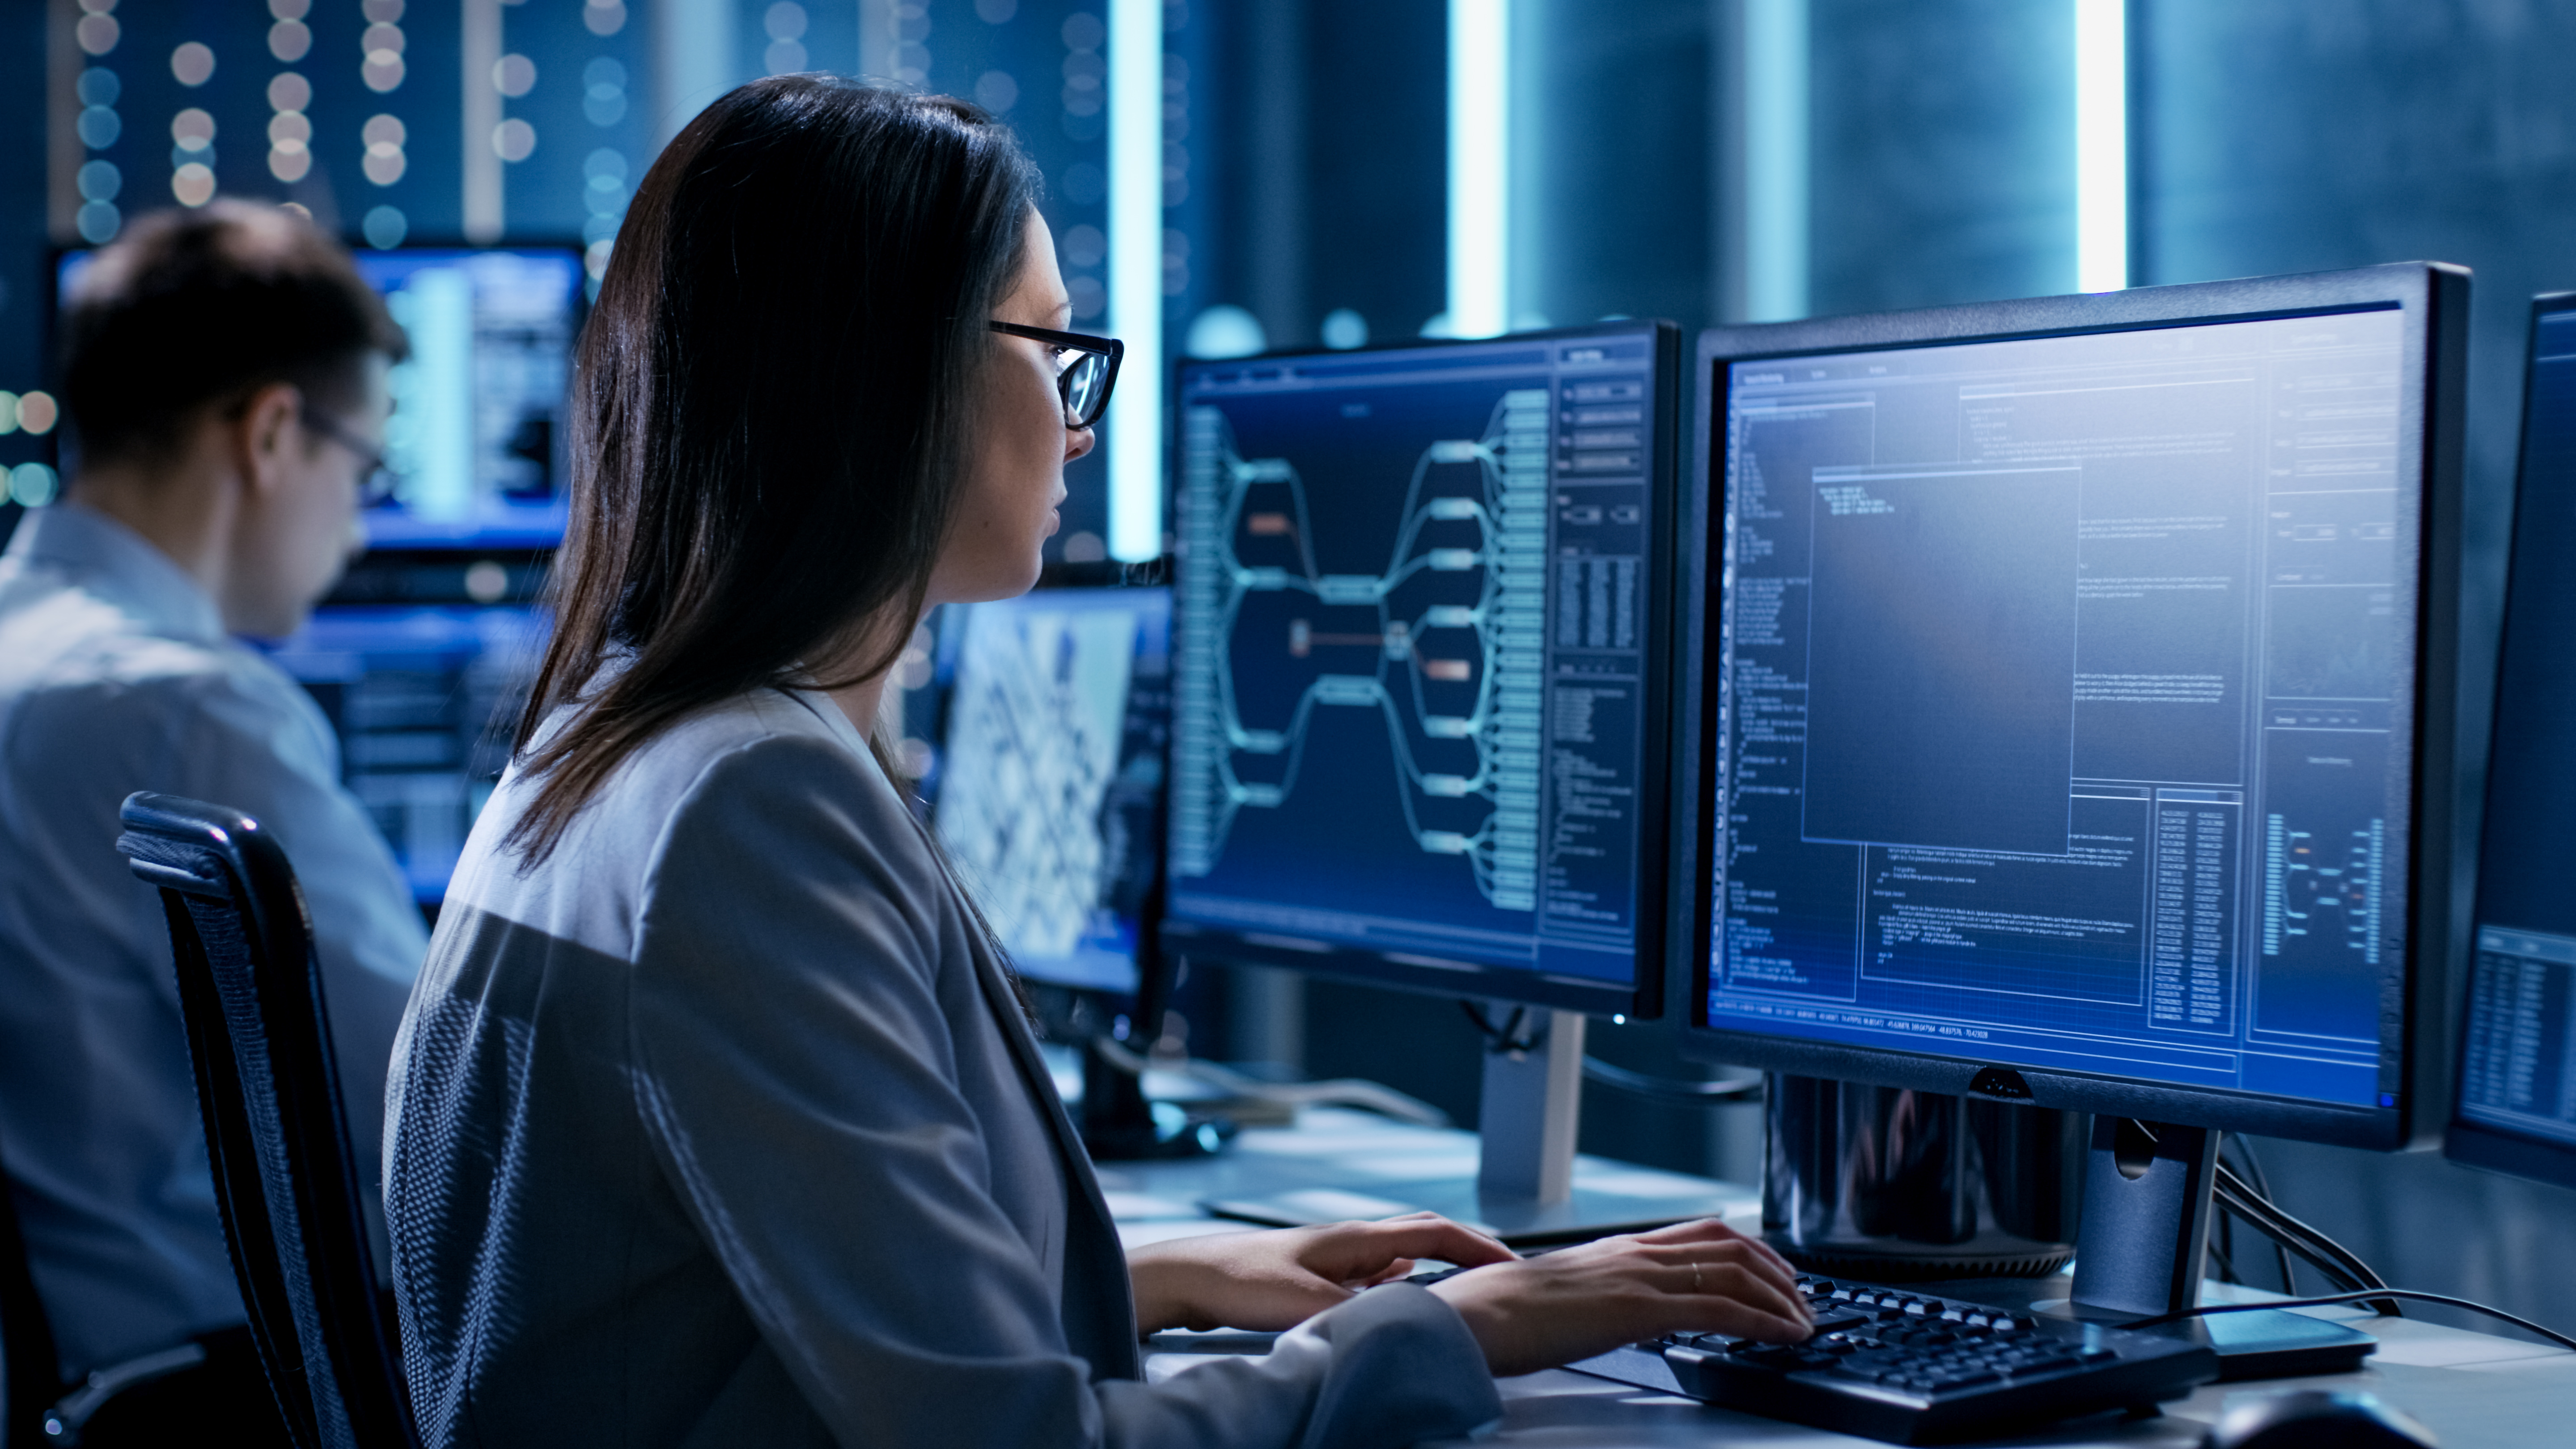 Is There Really a Cyber Security Professional Shortage? Why?